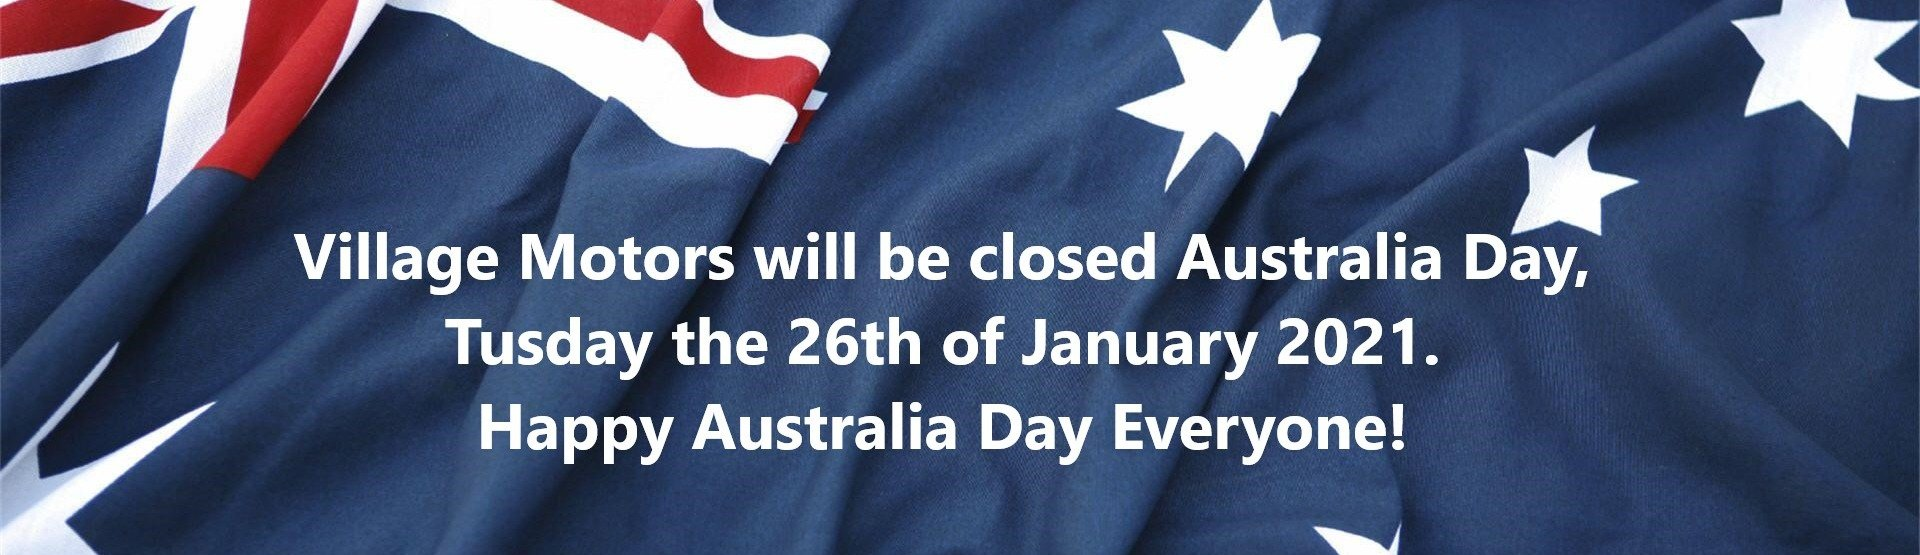 Australia Day Closed